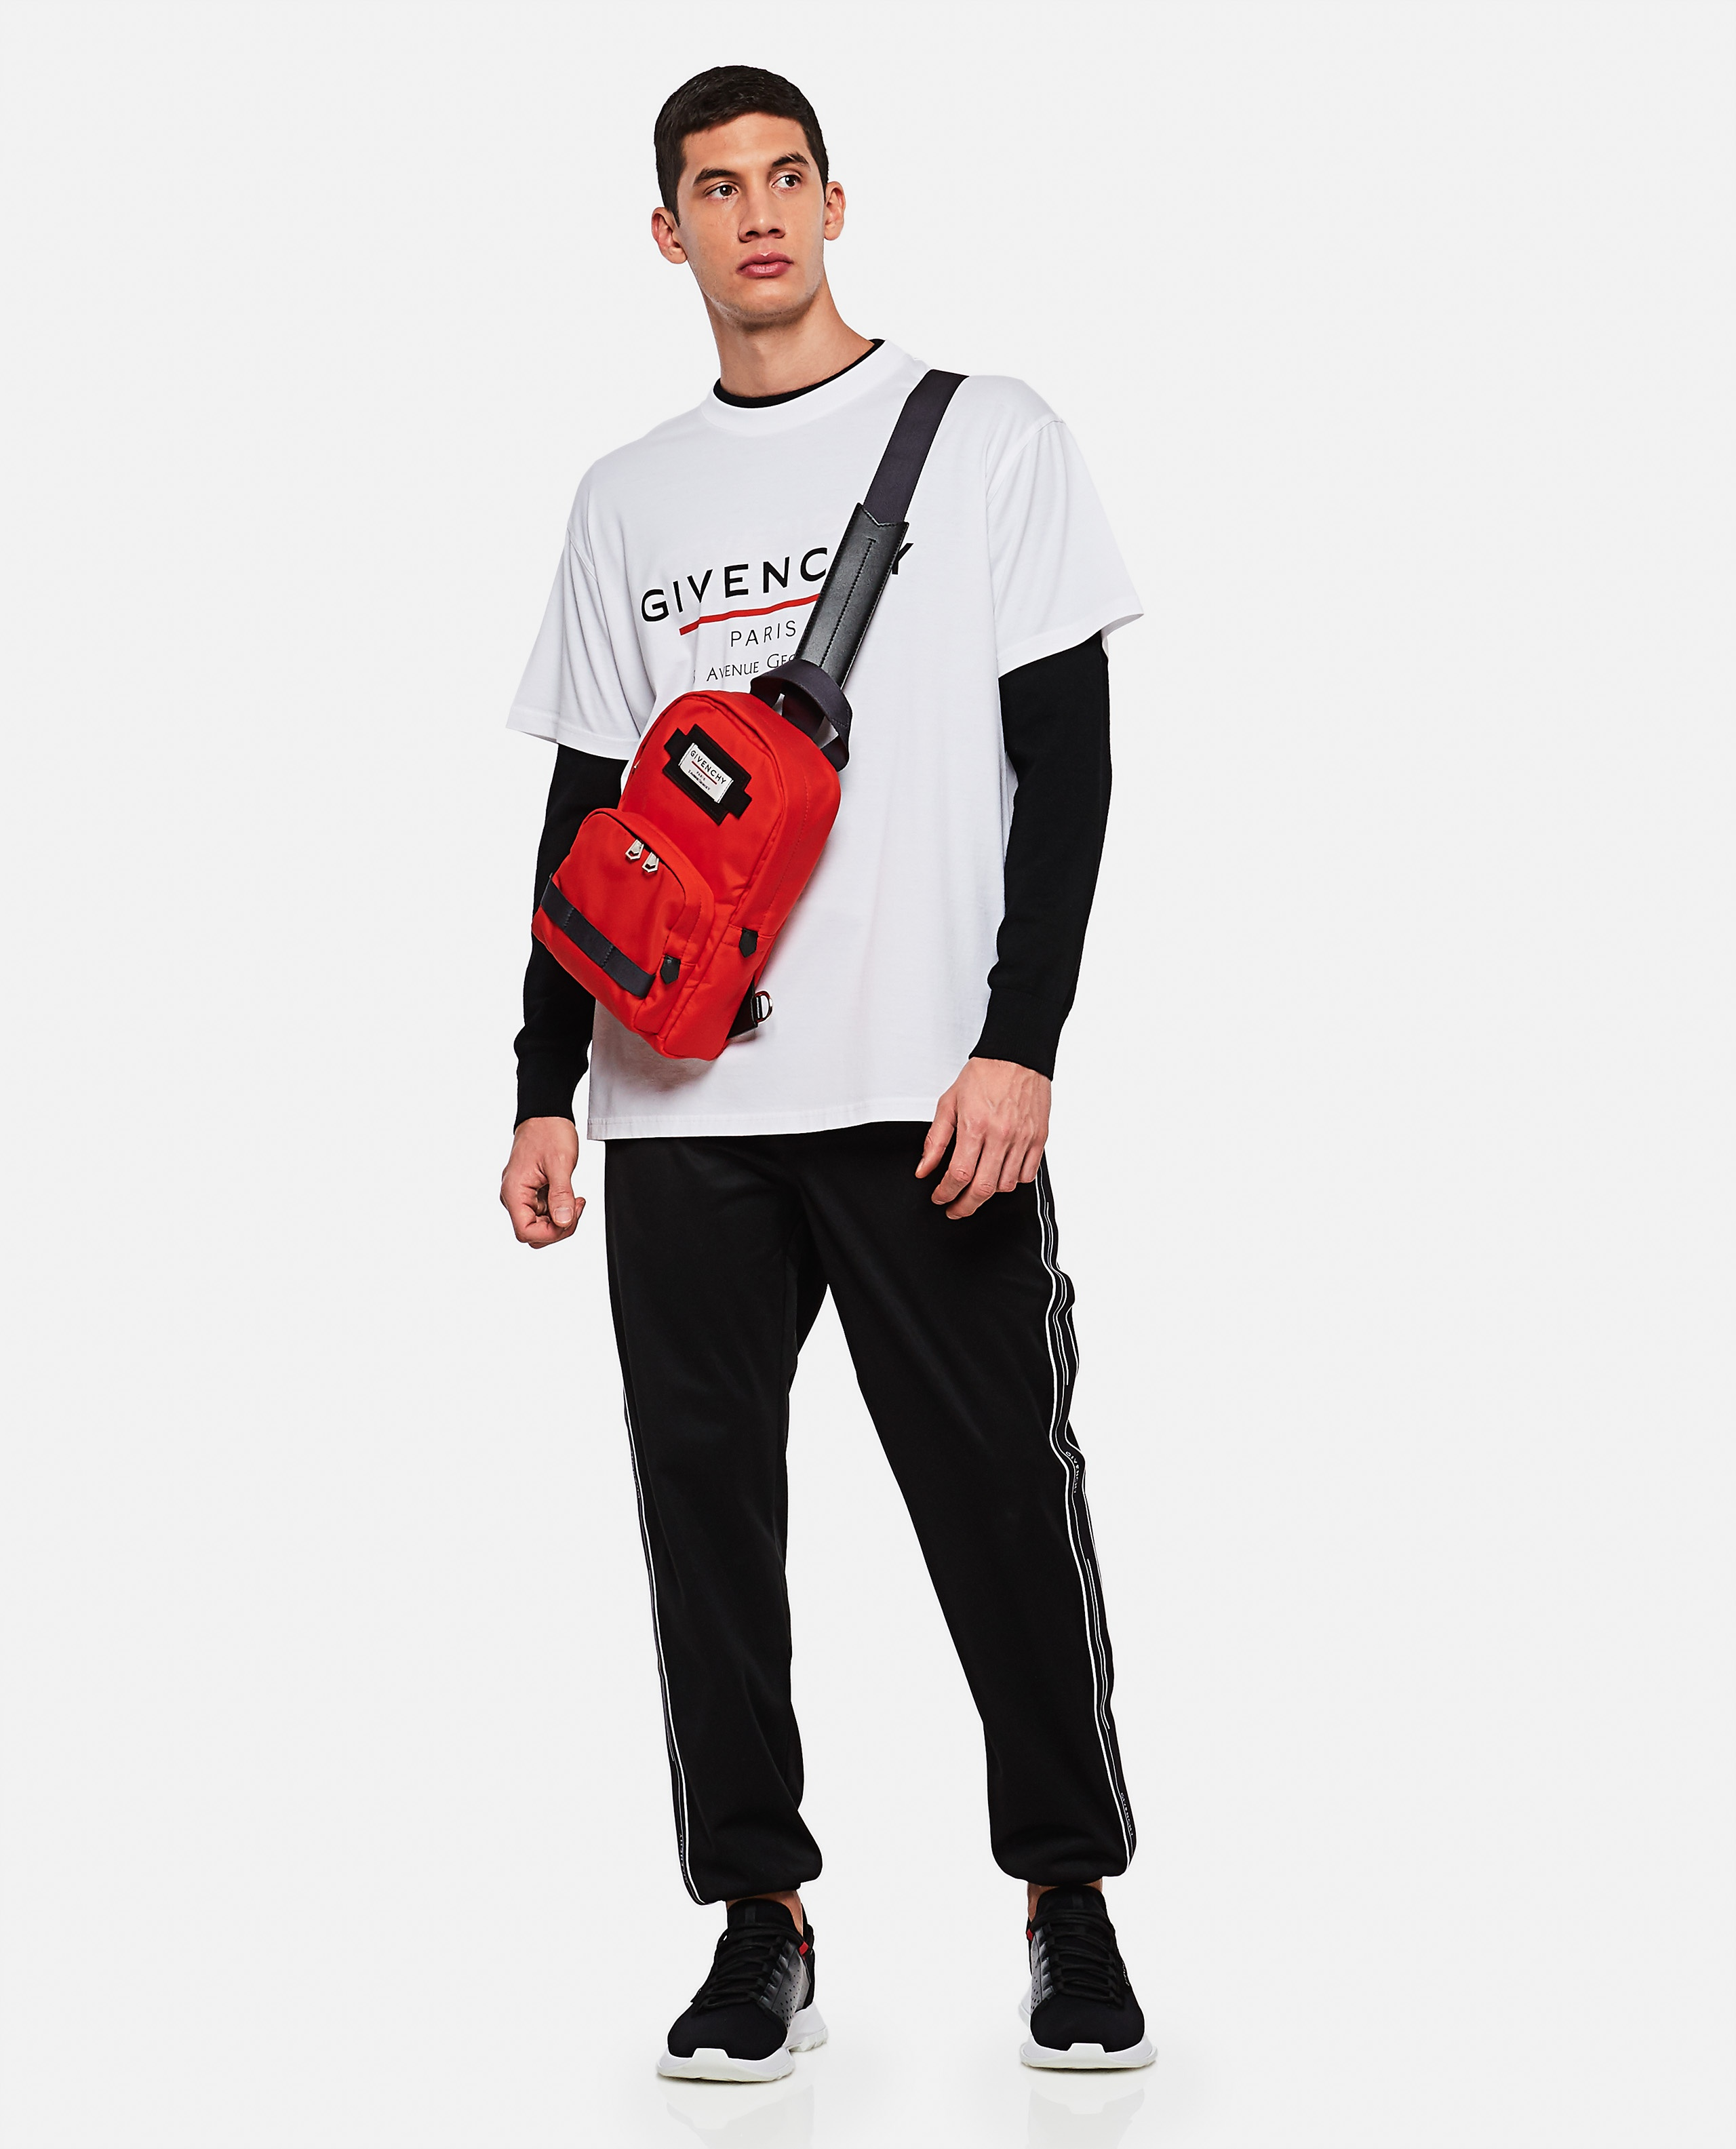 Jersey pullover Men Givenchy 000196770033492 2